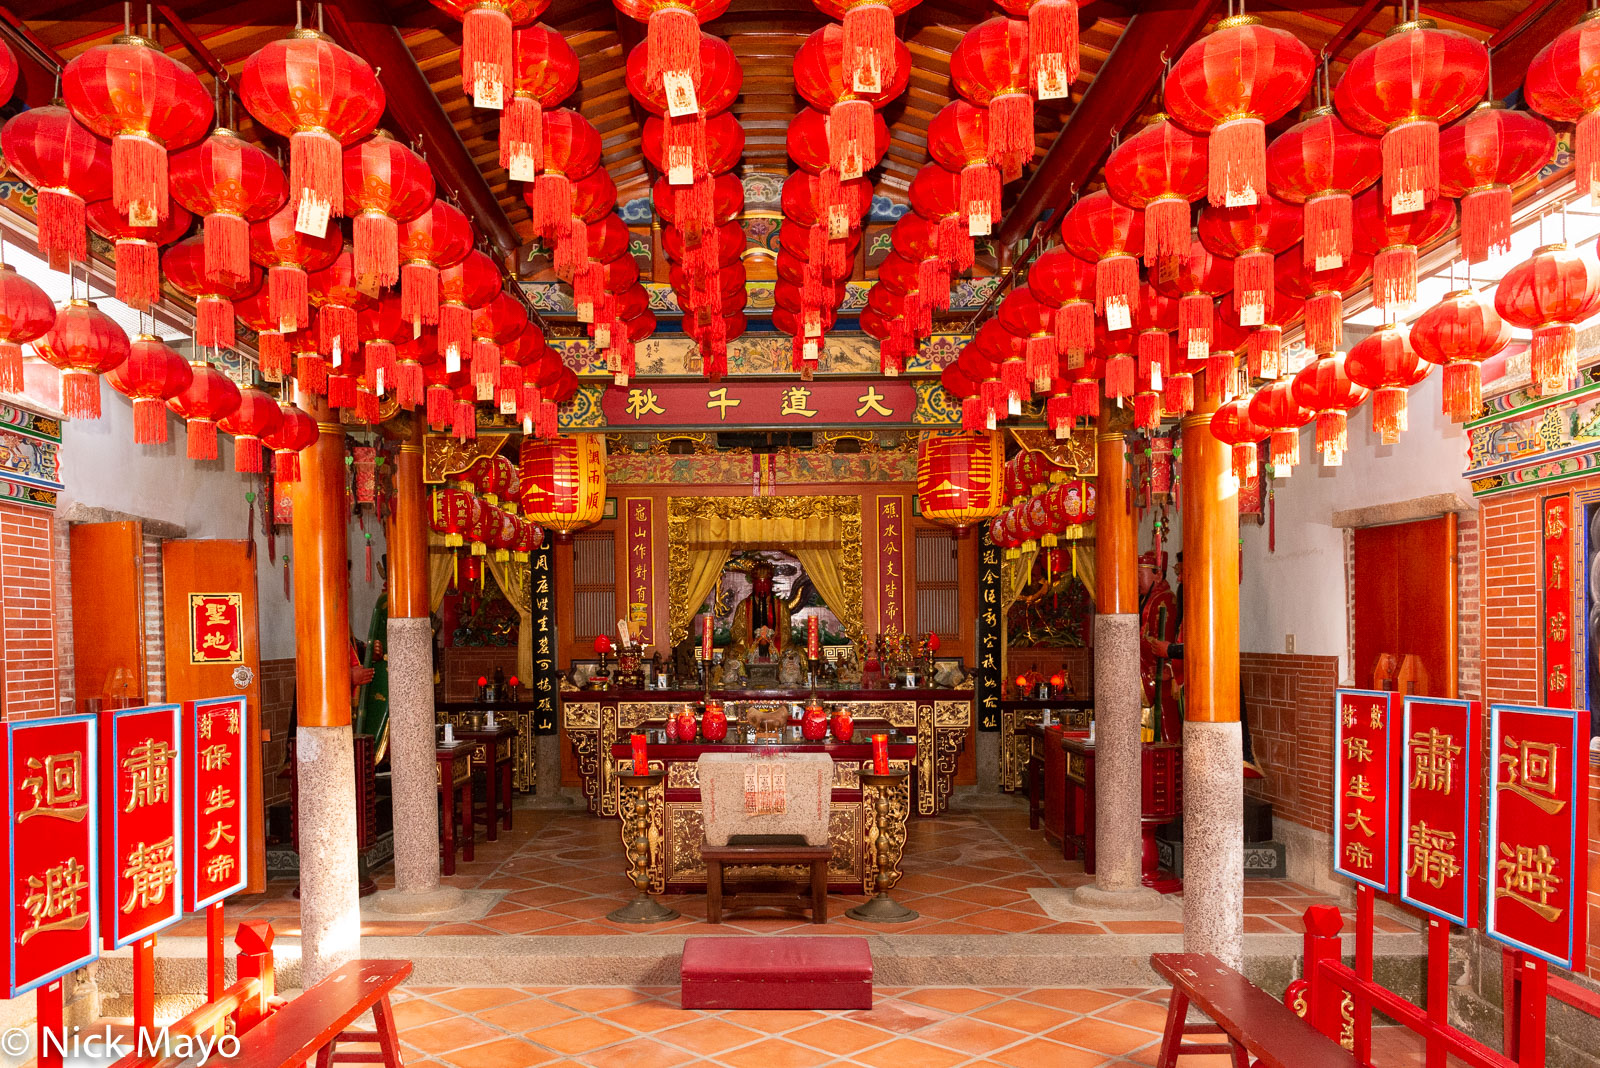 Interior of the temple at Zhushan village on Kinmen.